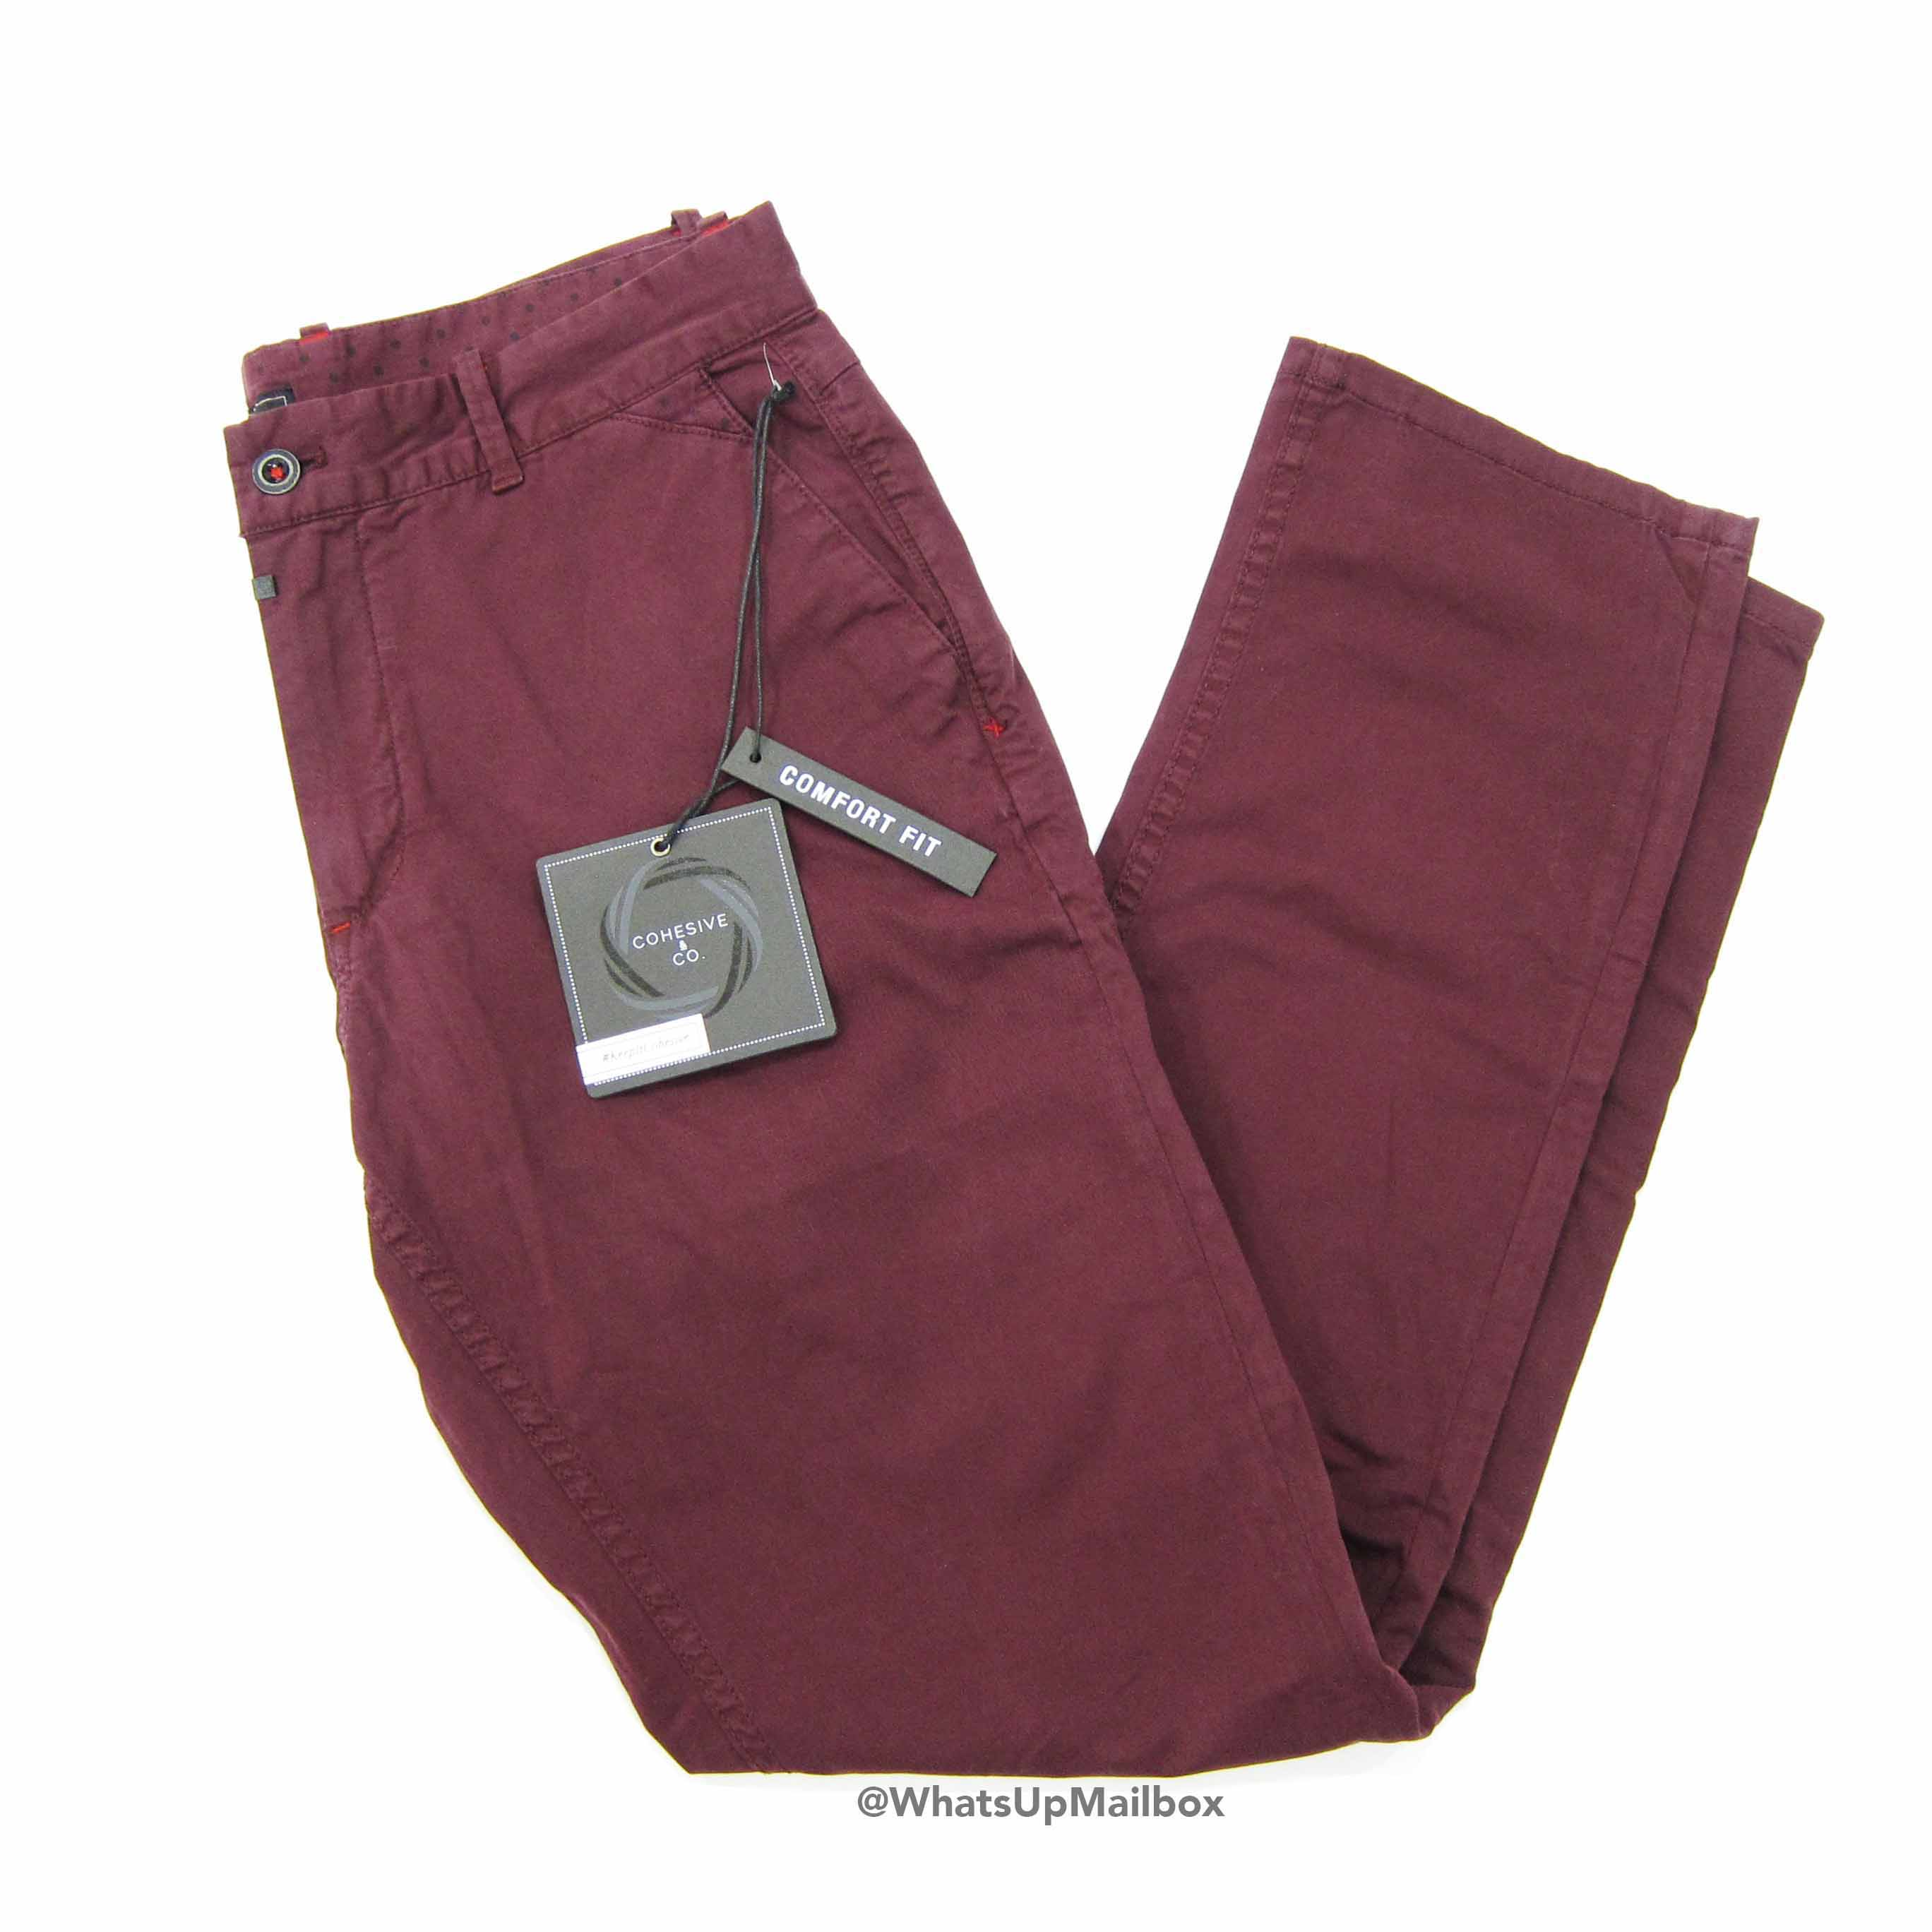 Cohesive & Co. - Bono Pant in Burgundy